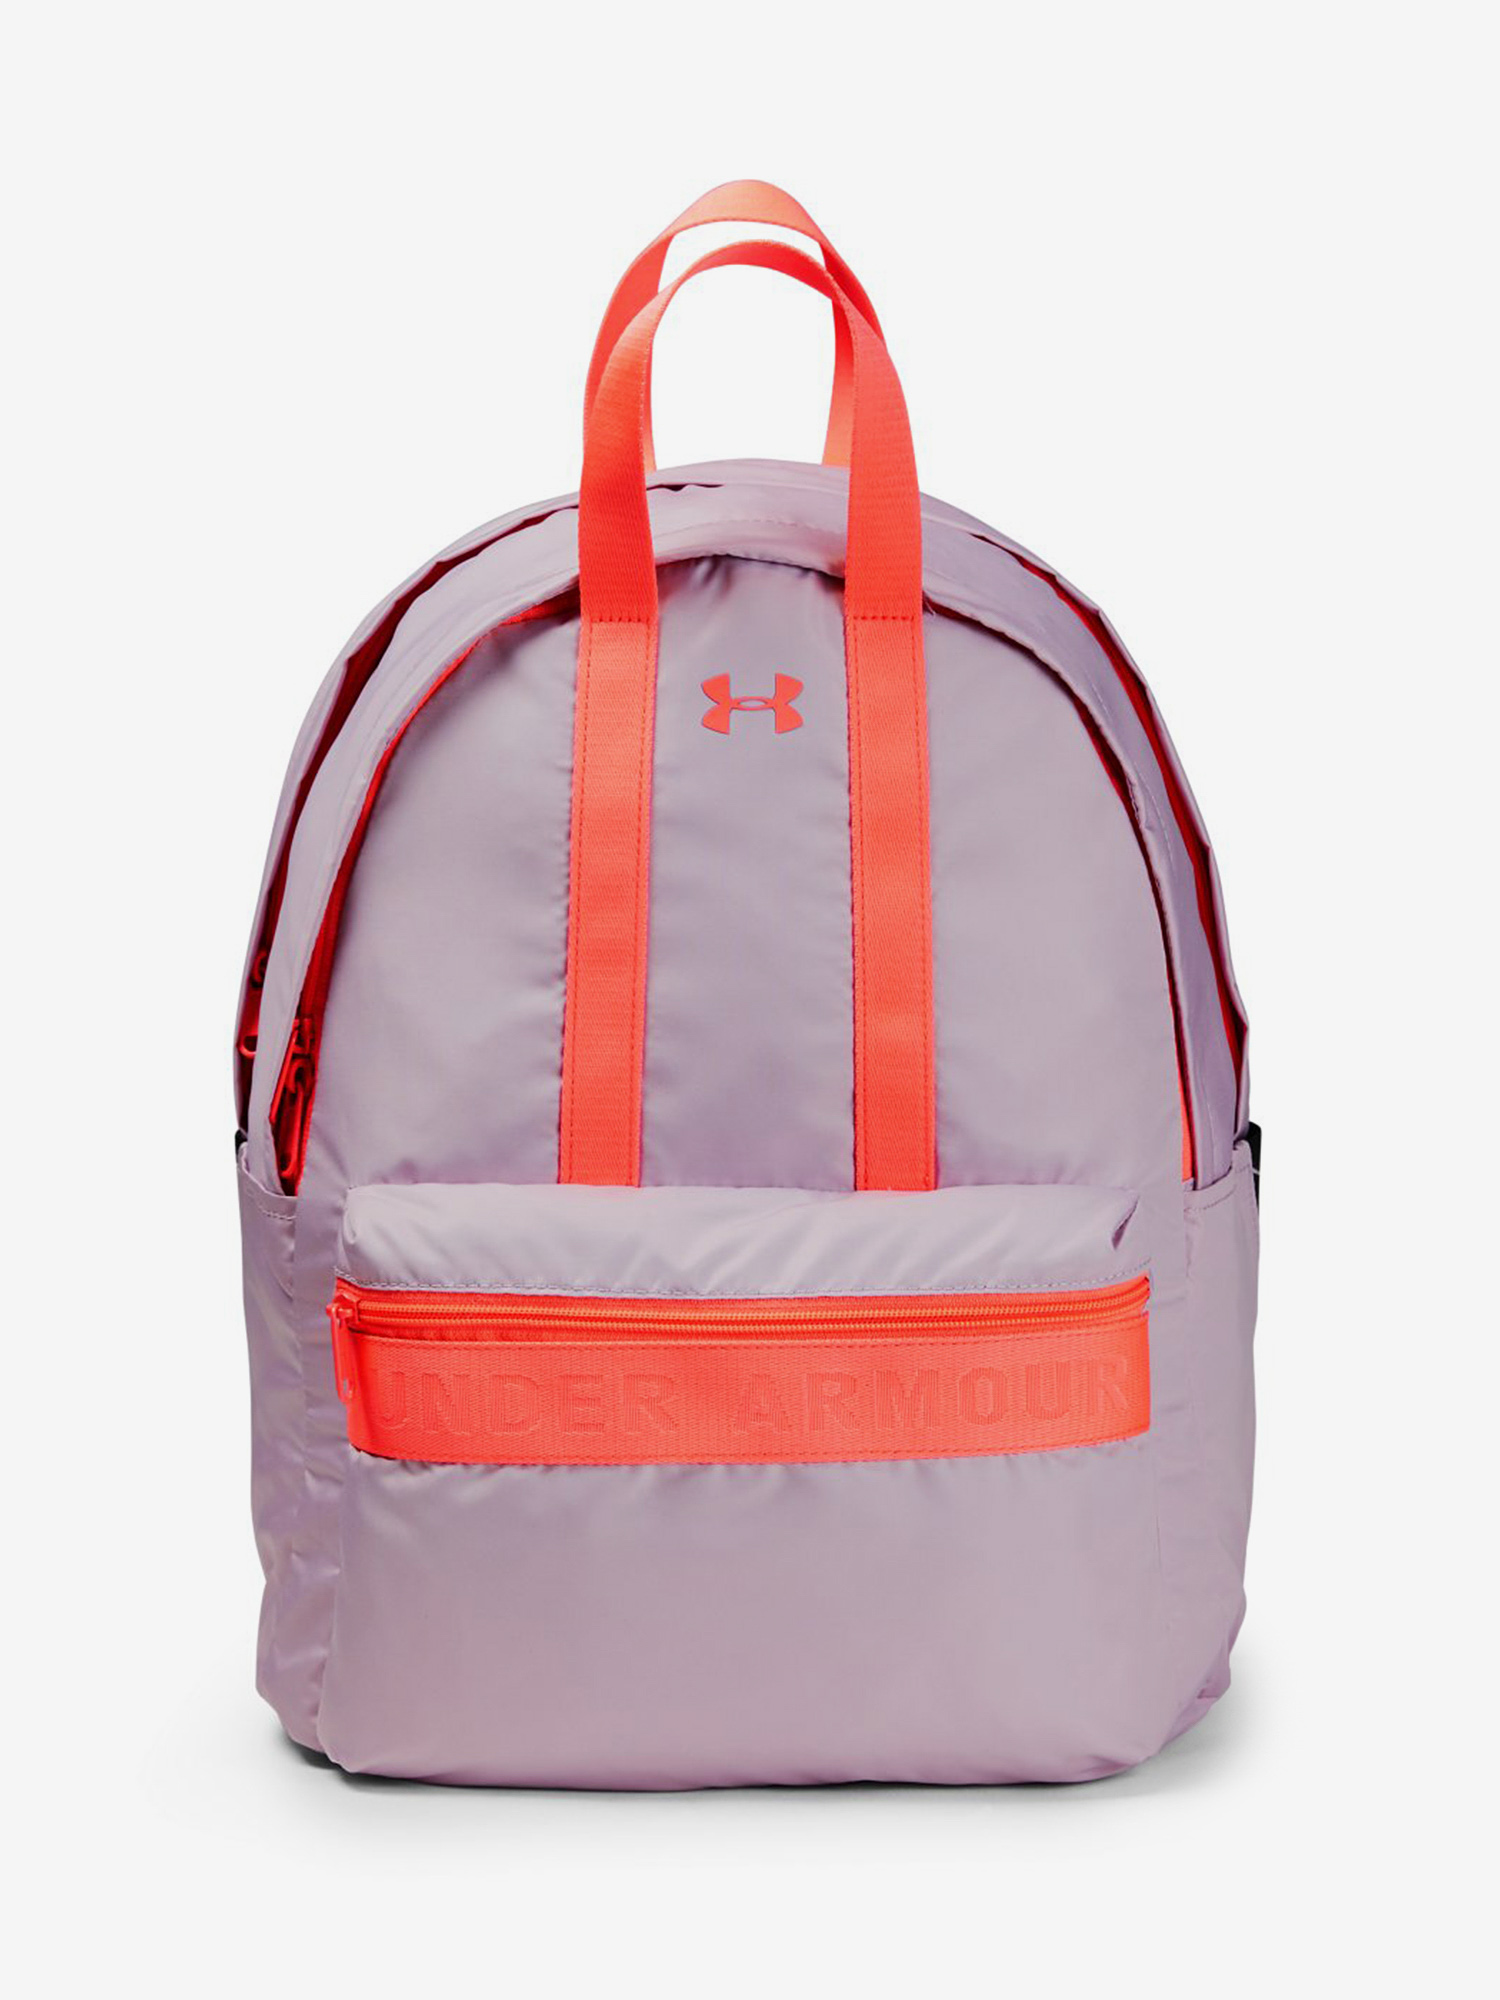 Batoh Under Armour Favorite Backpack-Pnk Růžová